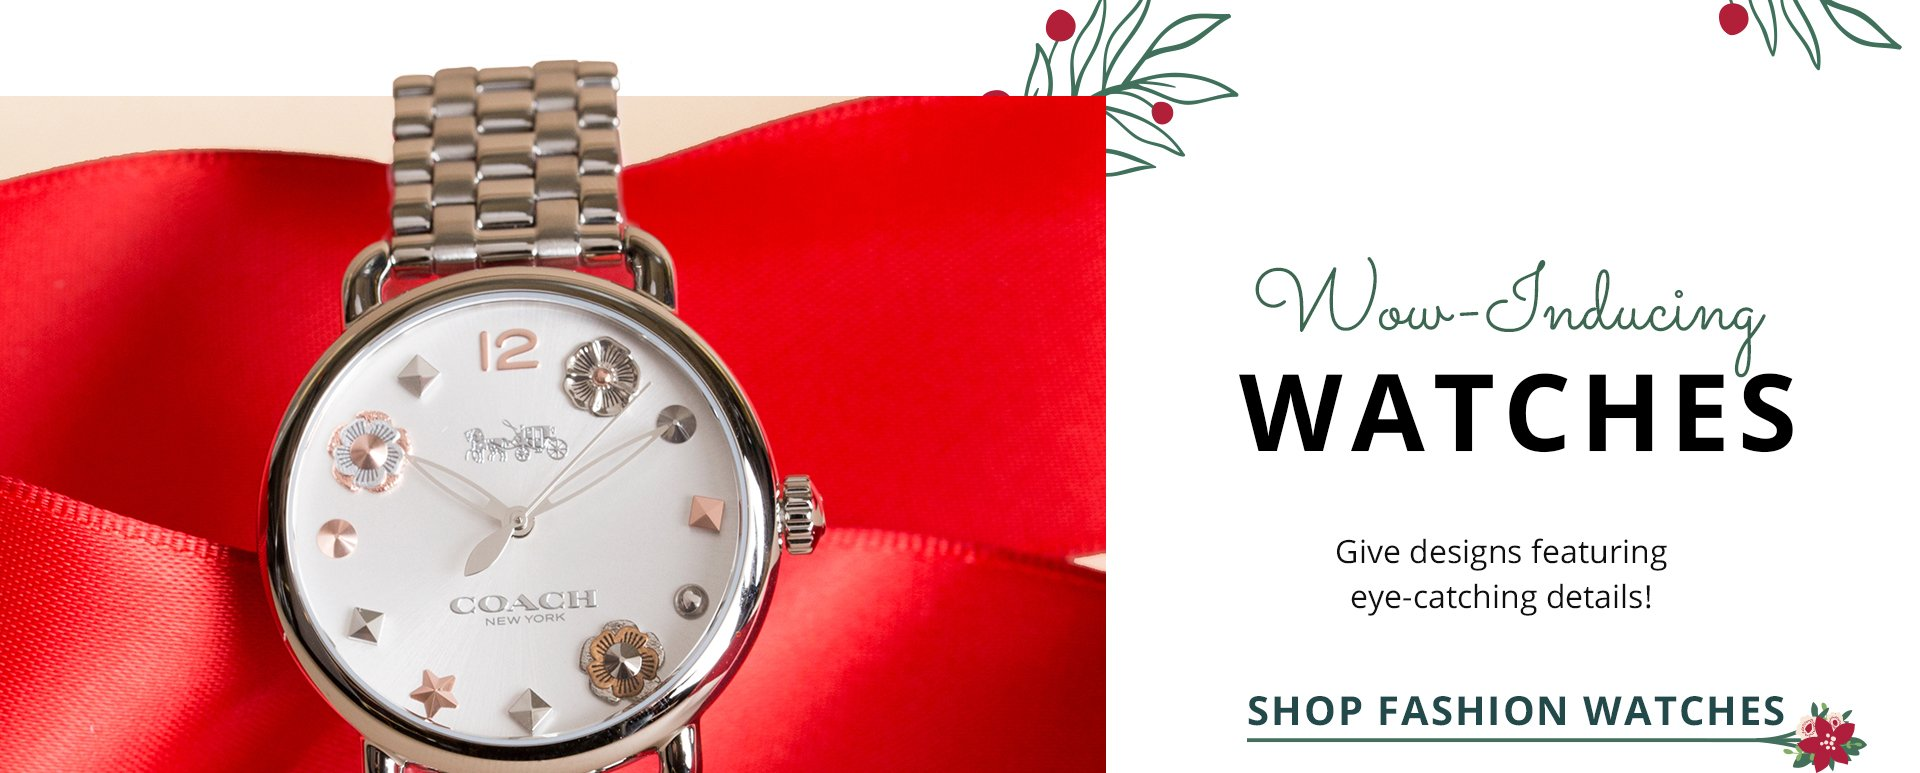 Wow-inducing watches. Give designs featuring eye-catching details.Shop Fashion Watches